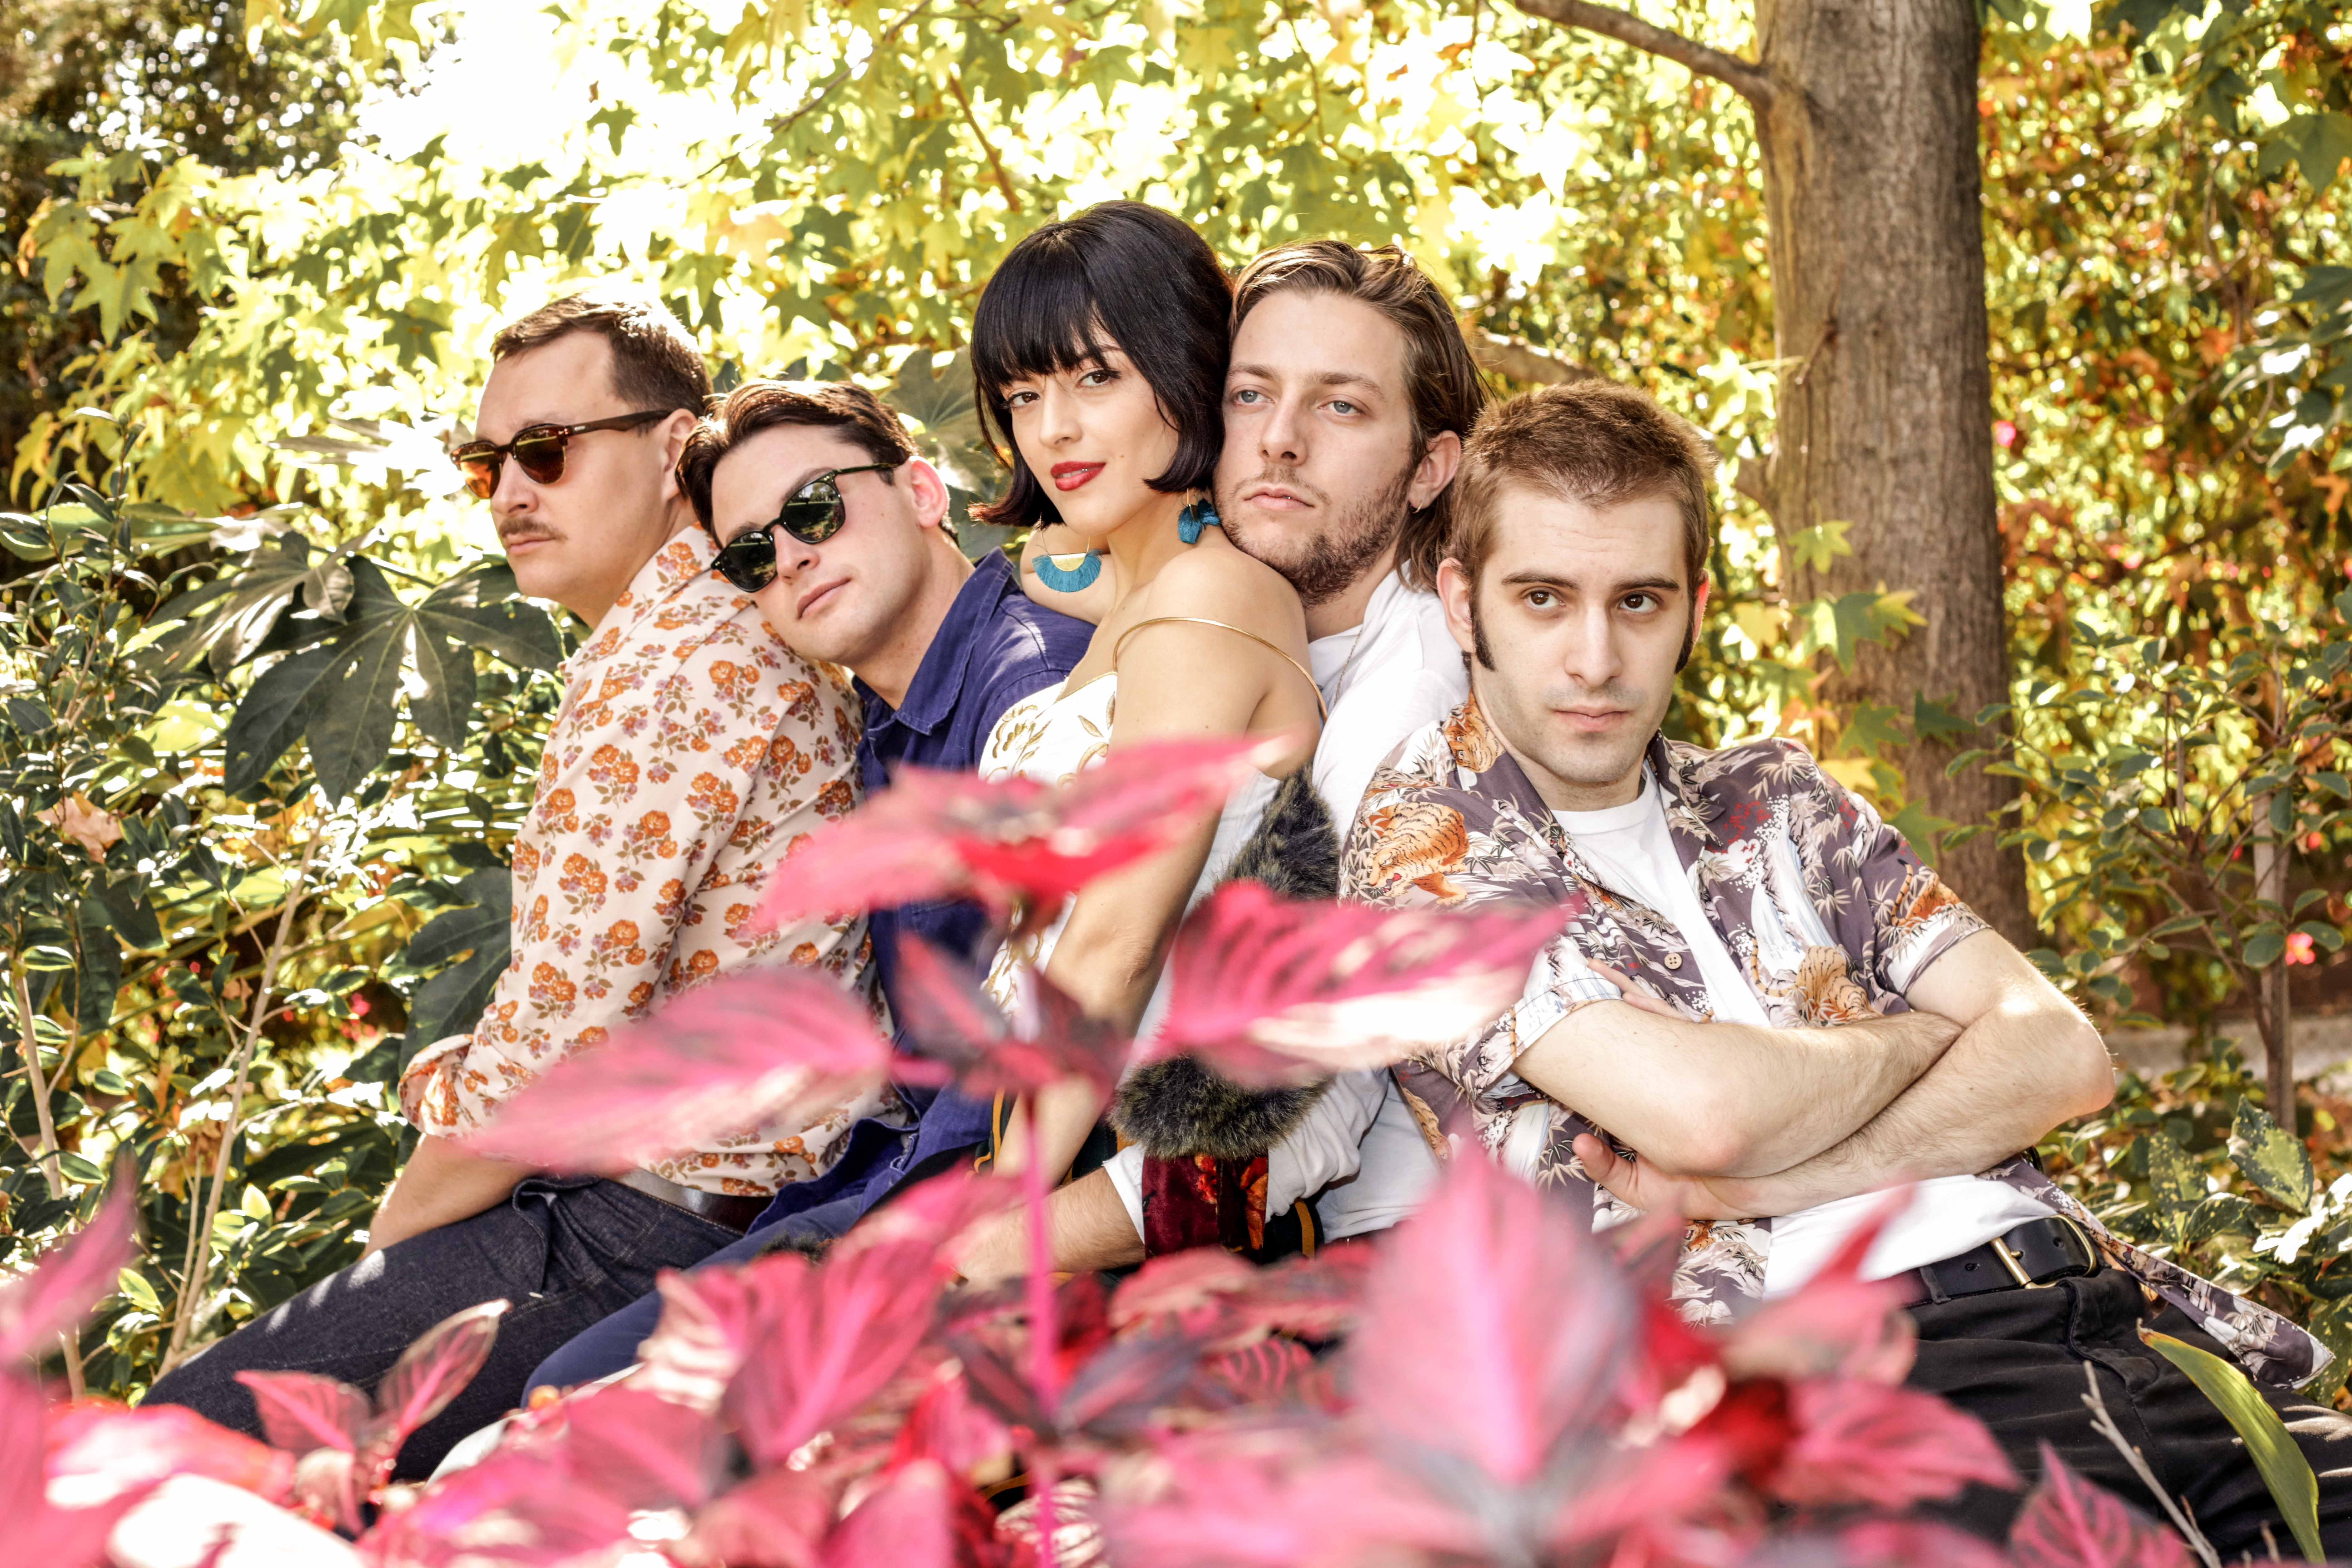 Meet The Marías, the Los Angeles Band Making Dreamy Vintage Pop for Lazy Pool Days